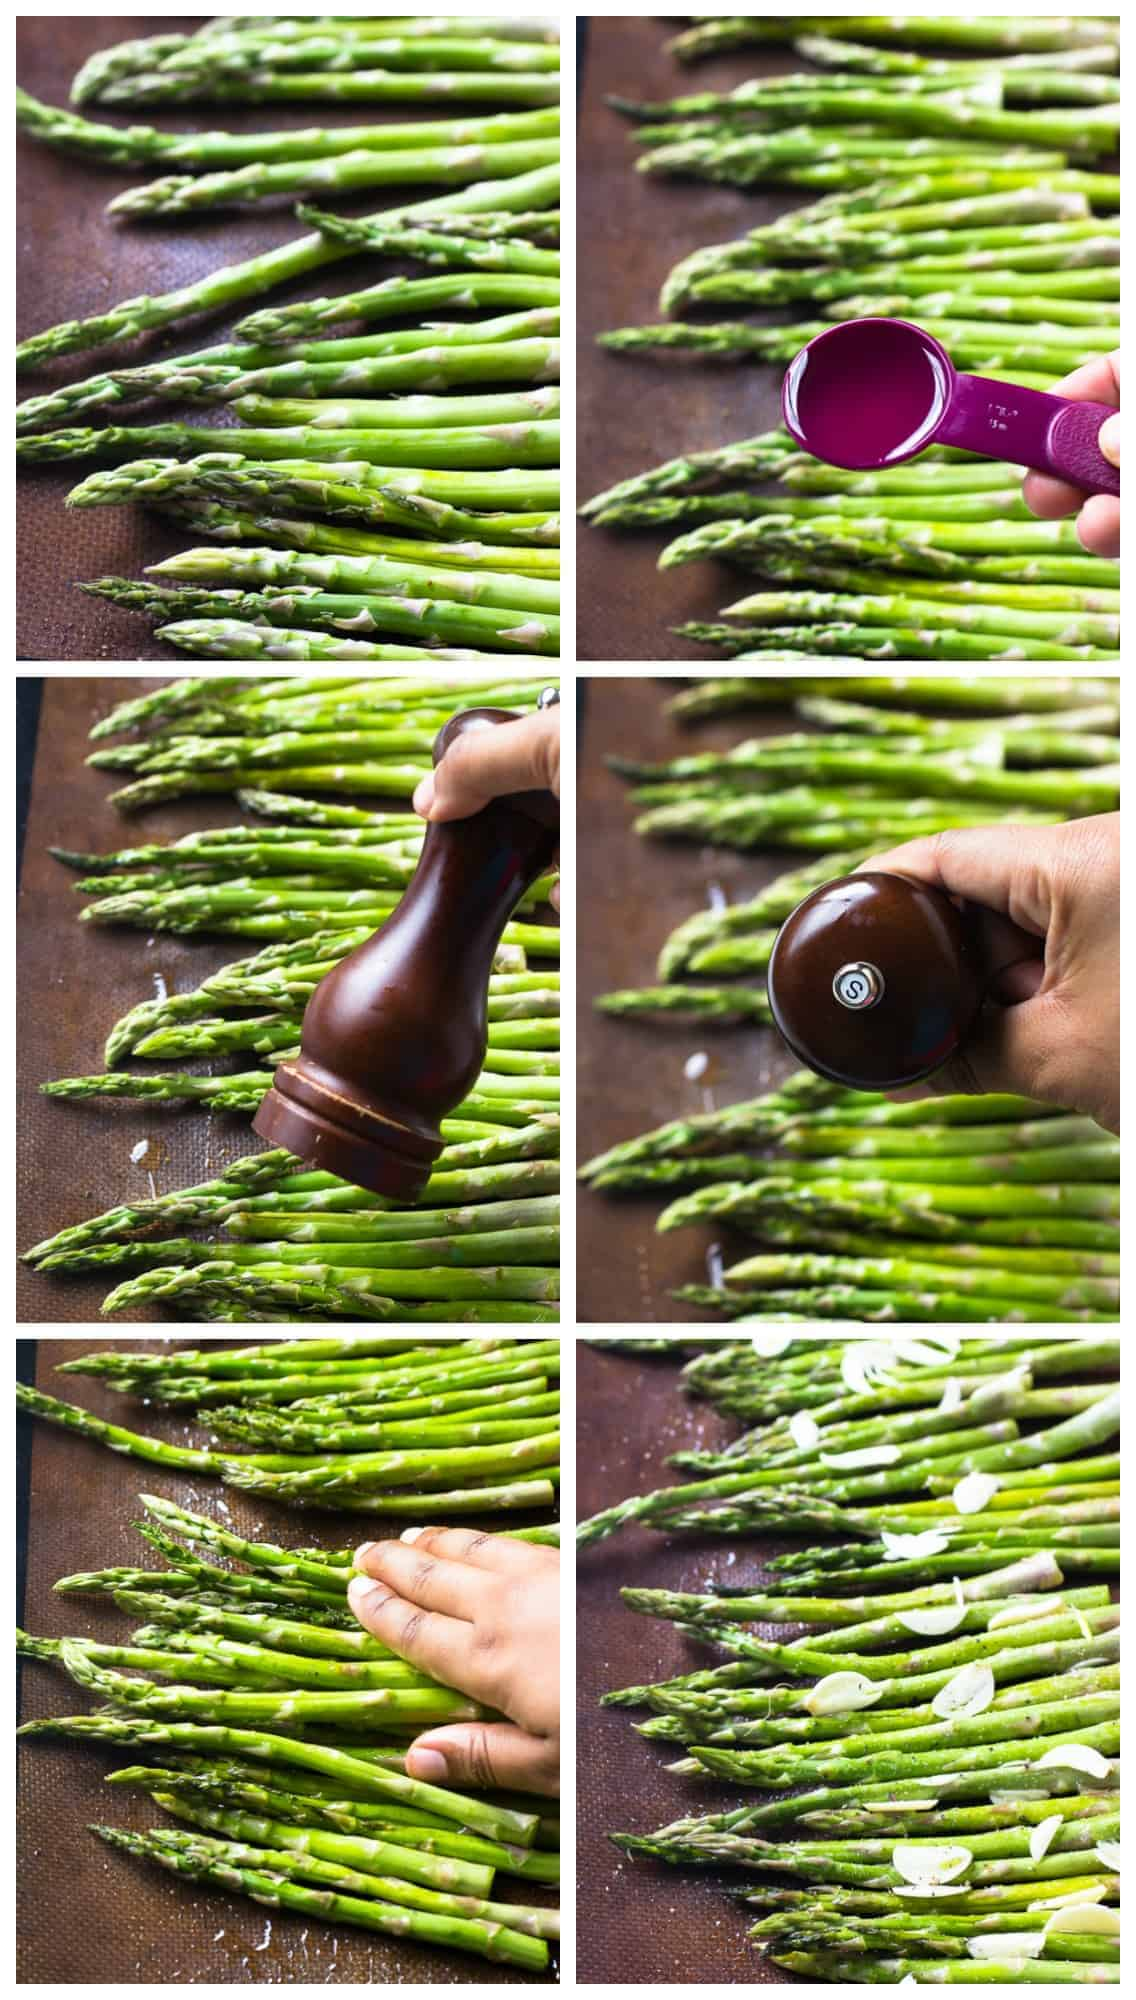 Montage of seasoning asparagus on a baking tray.